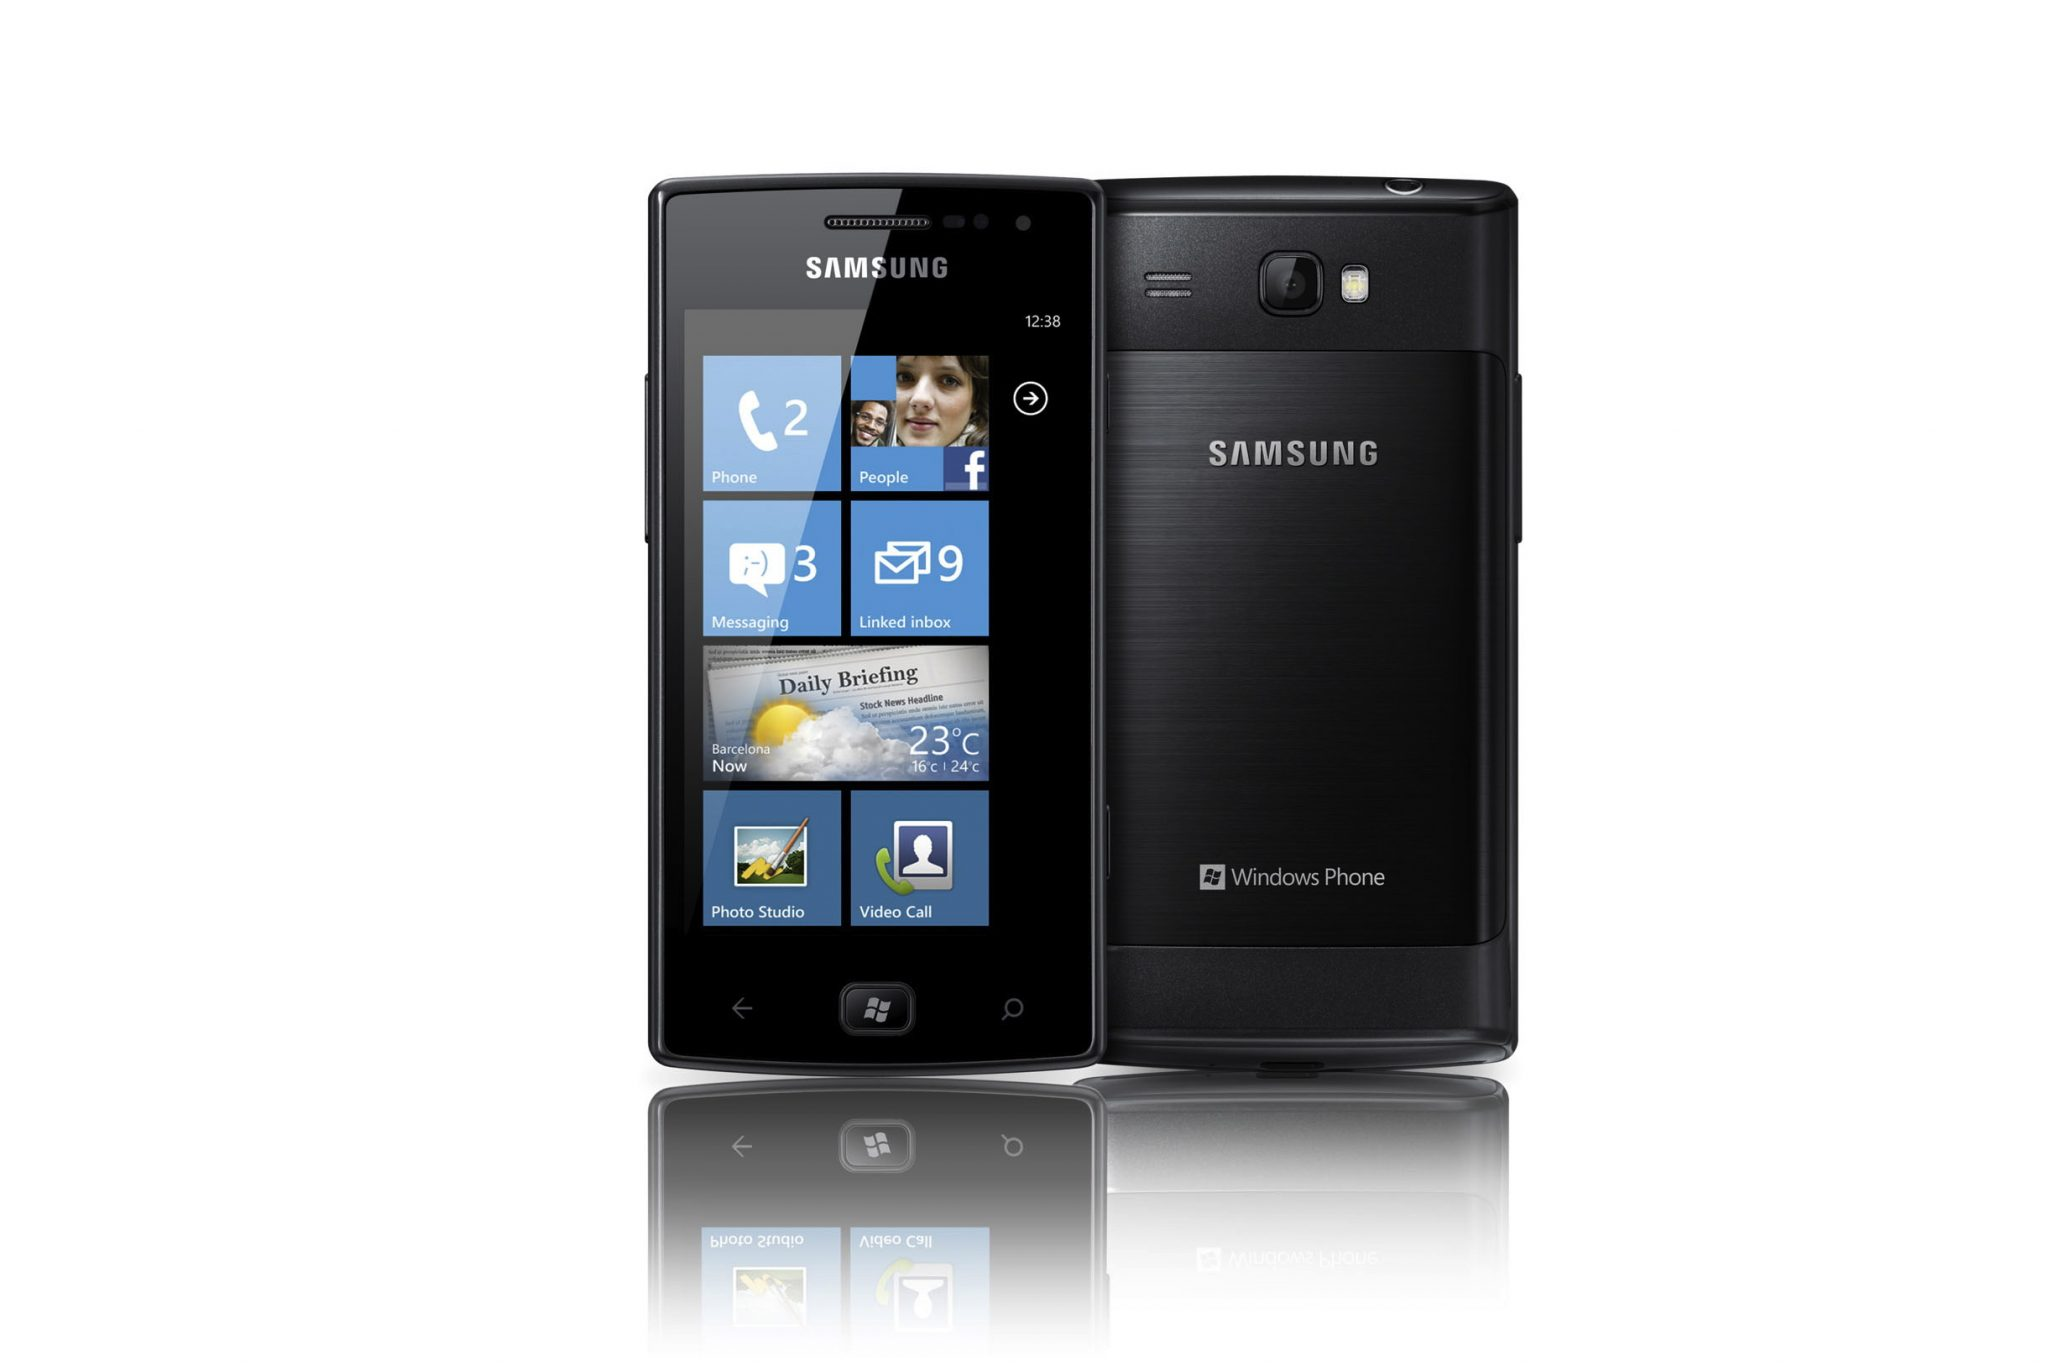 Samsung Omnia W, comme Windows Phone